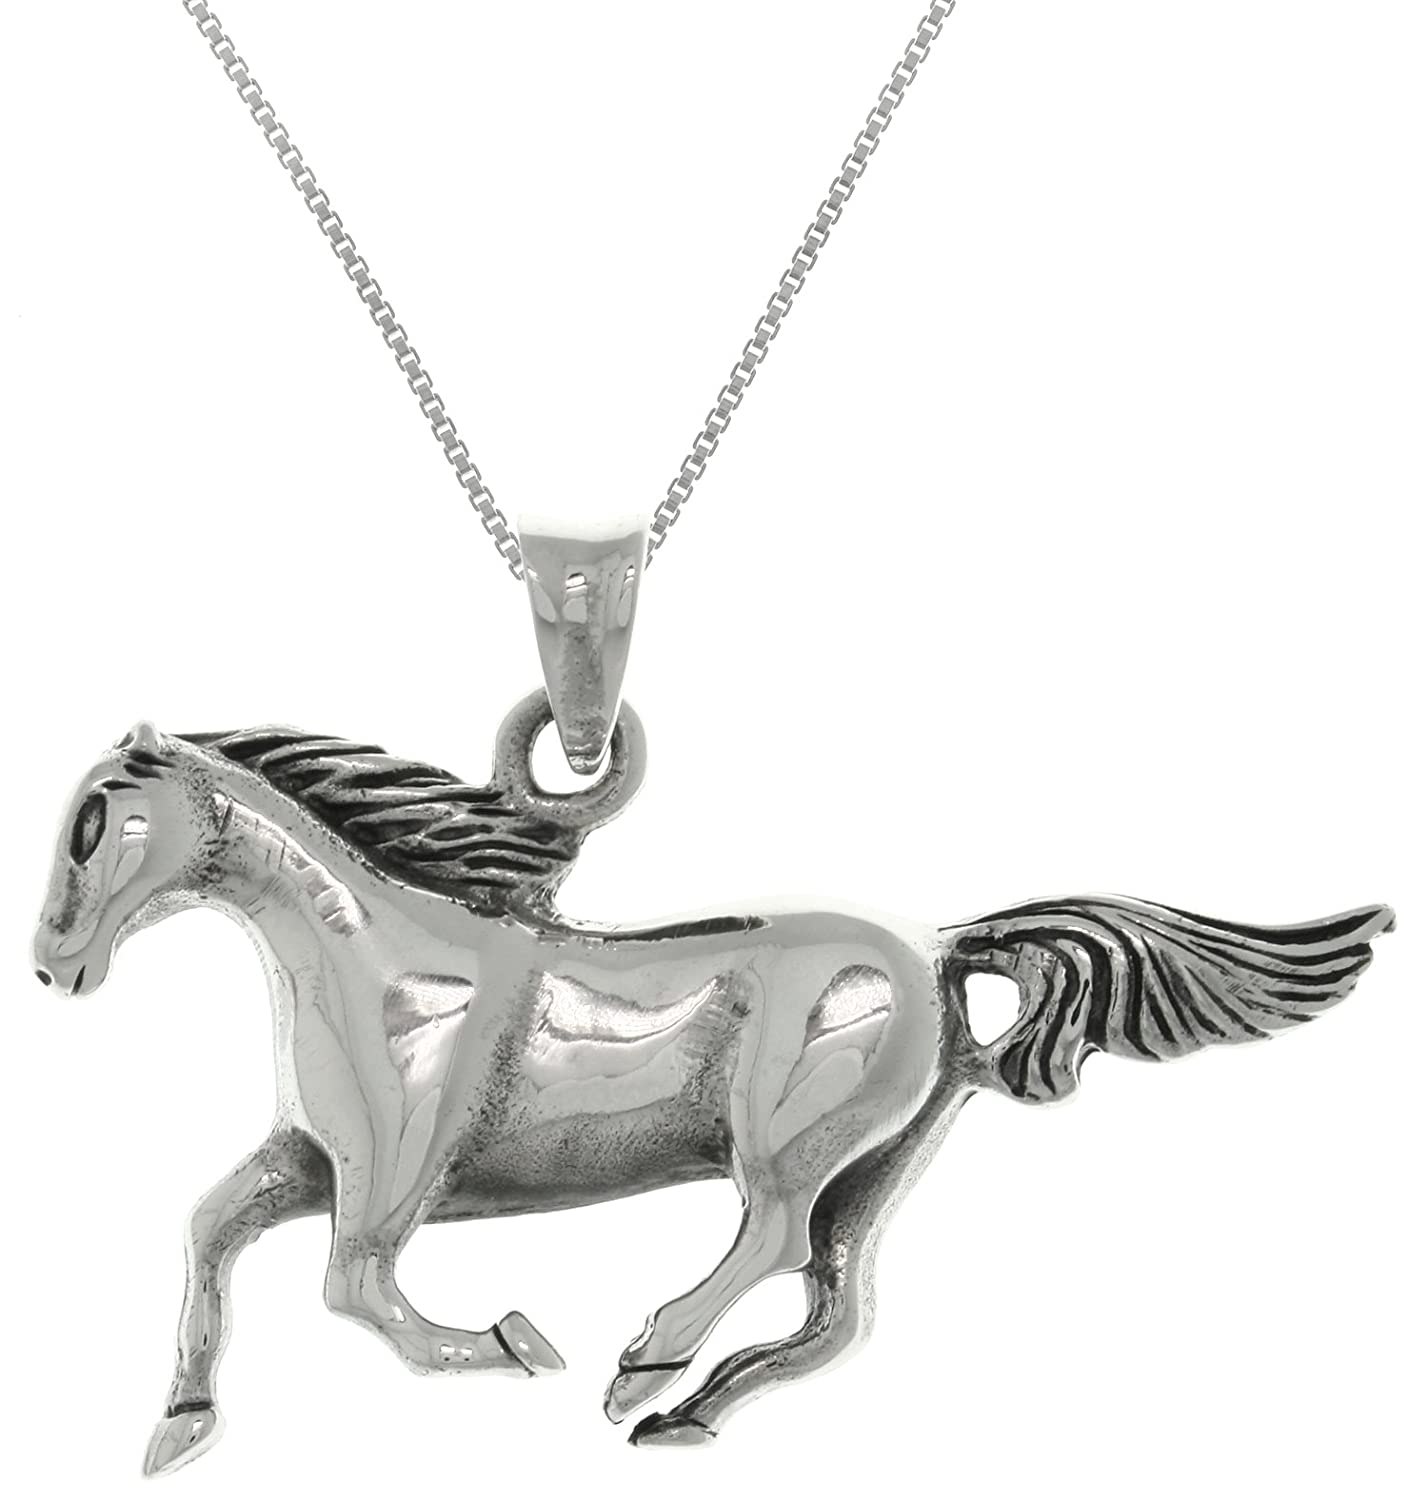 Jewelry Trends Sterling Silver Mustang Running Horse Pendant Necklace 18